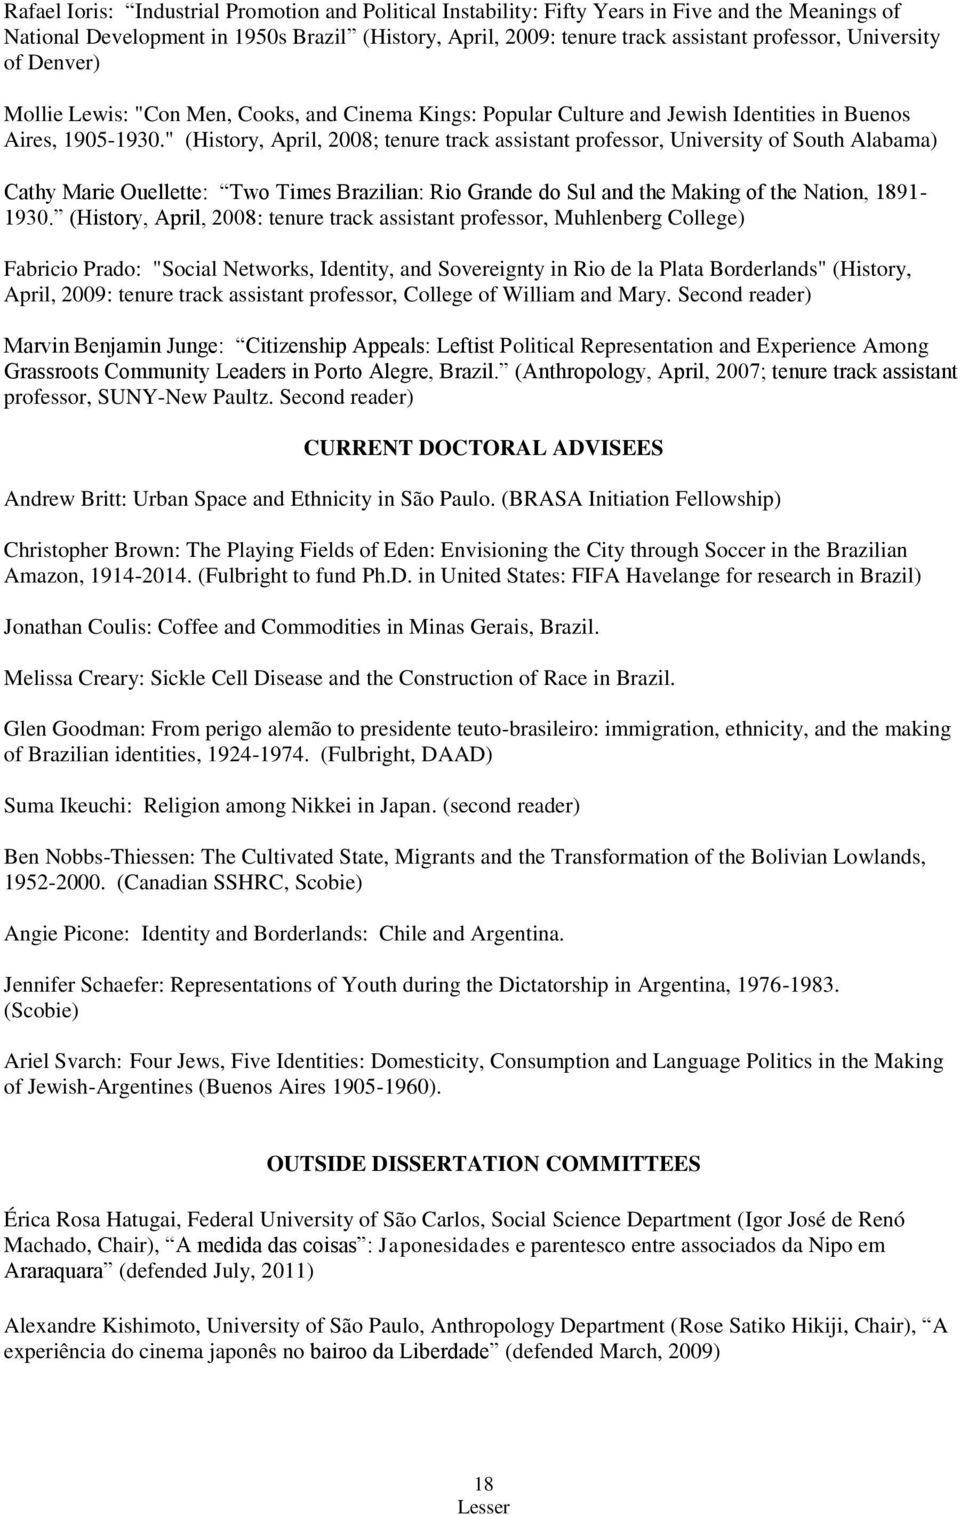 """ (History, April, 2008; tenure track assistant professor, University of South Alabama) Cathy Marie Ouellette: Two Times Brazilian: Rio Grande do Sul and the Making of the Nation, 1891-1930."